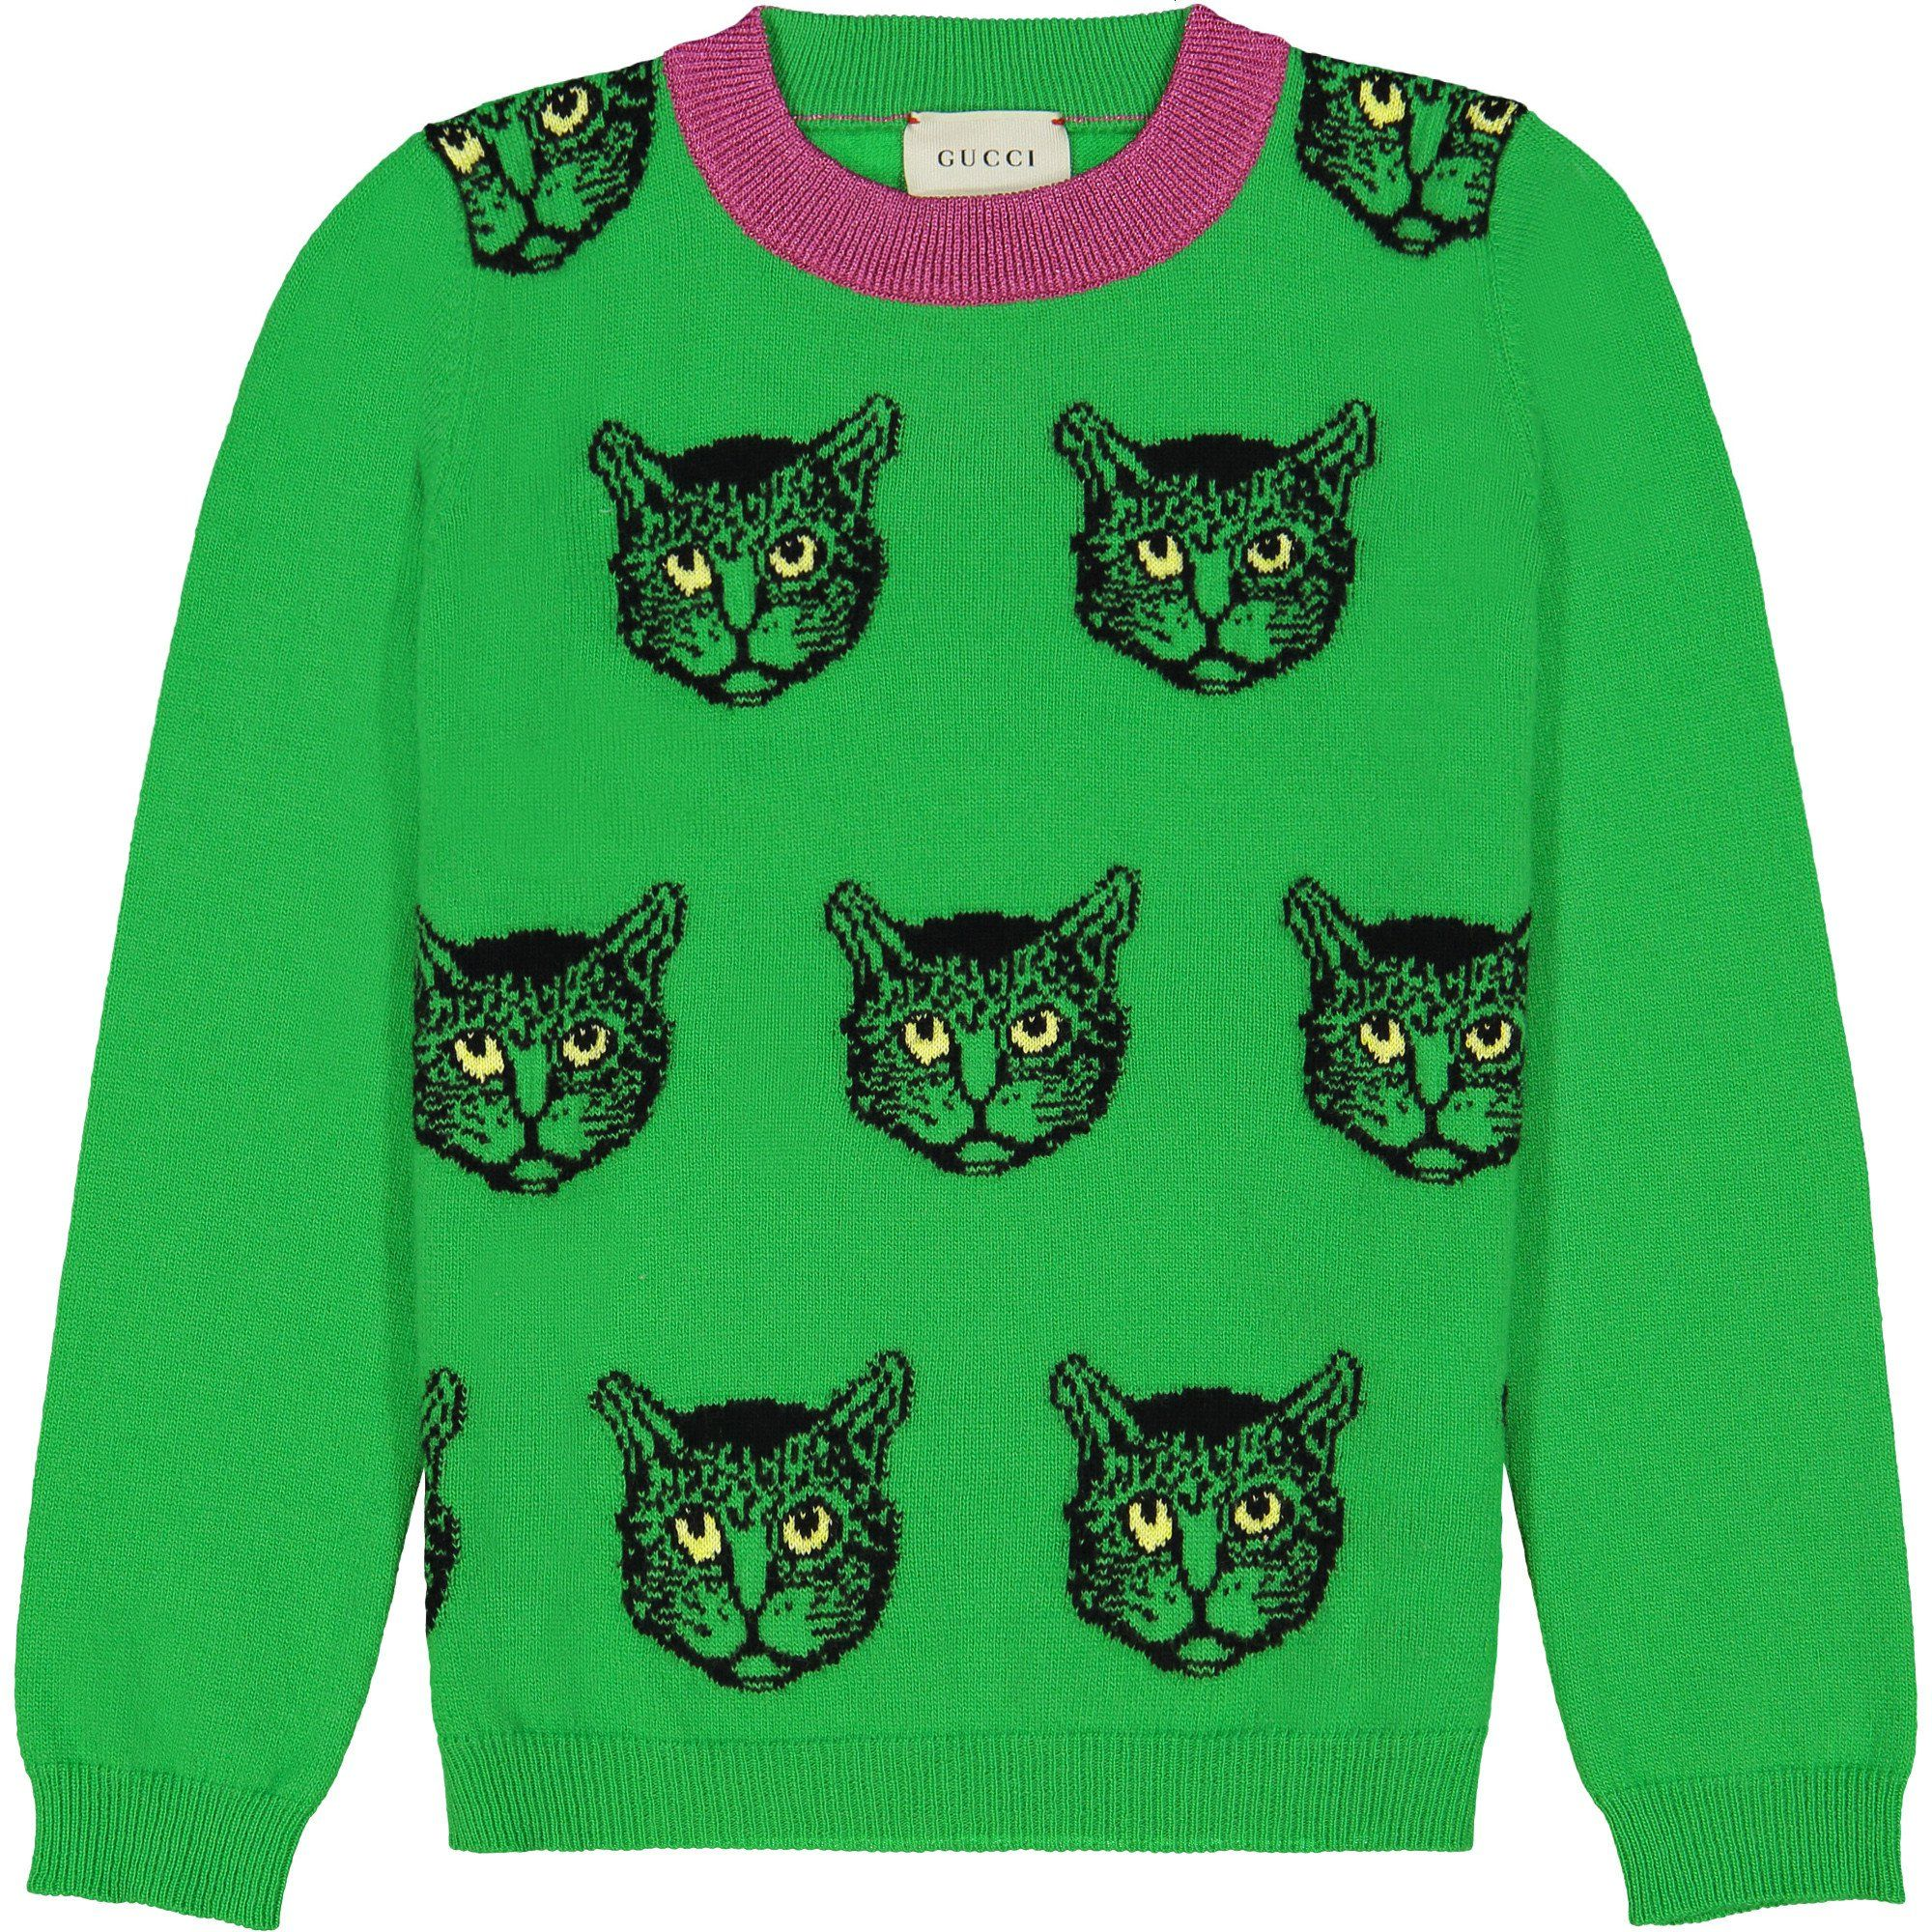 67736be0517b Girls Sweater in Green with Cat Knit | Fashion | Sweaters, Girls ...